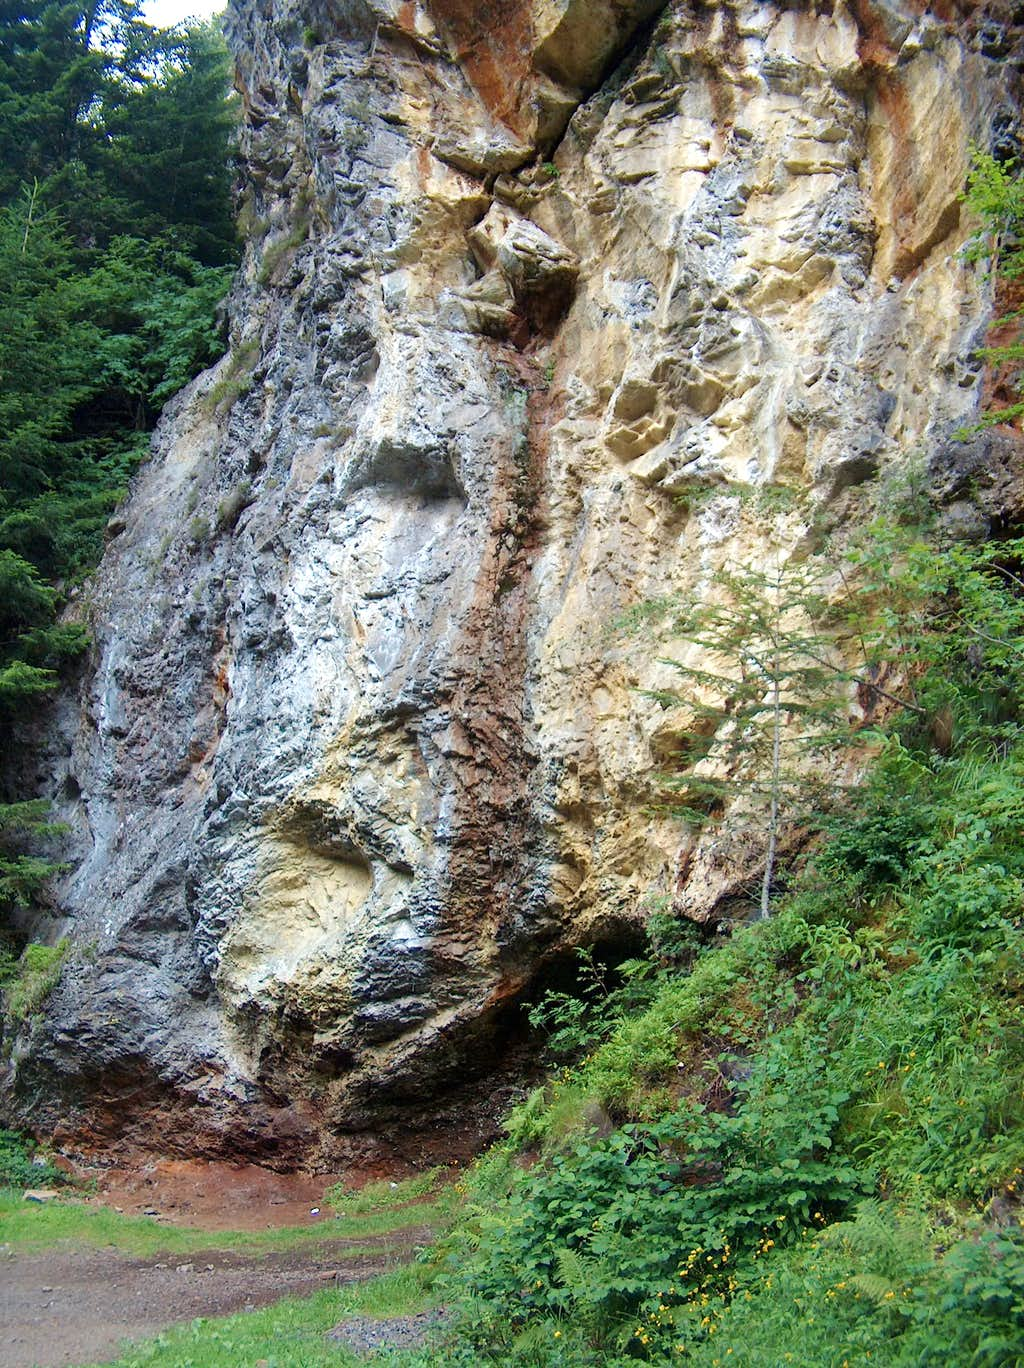 Yellow colorated waterfall (sulfur ?)